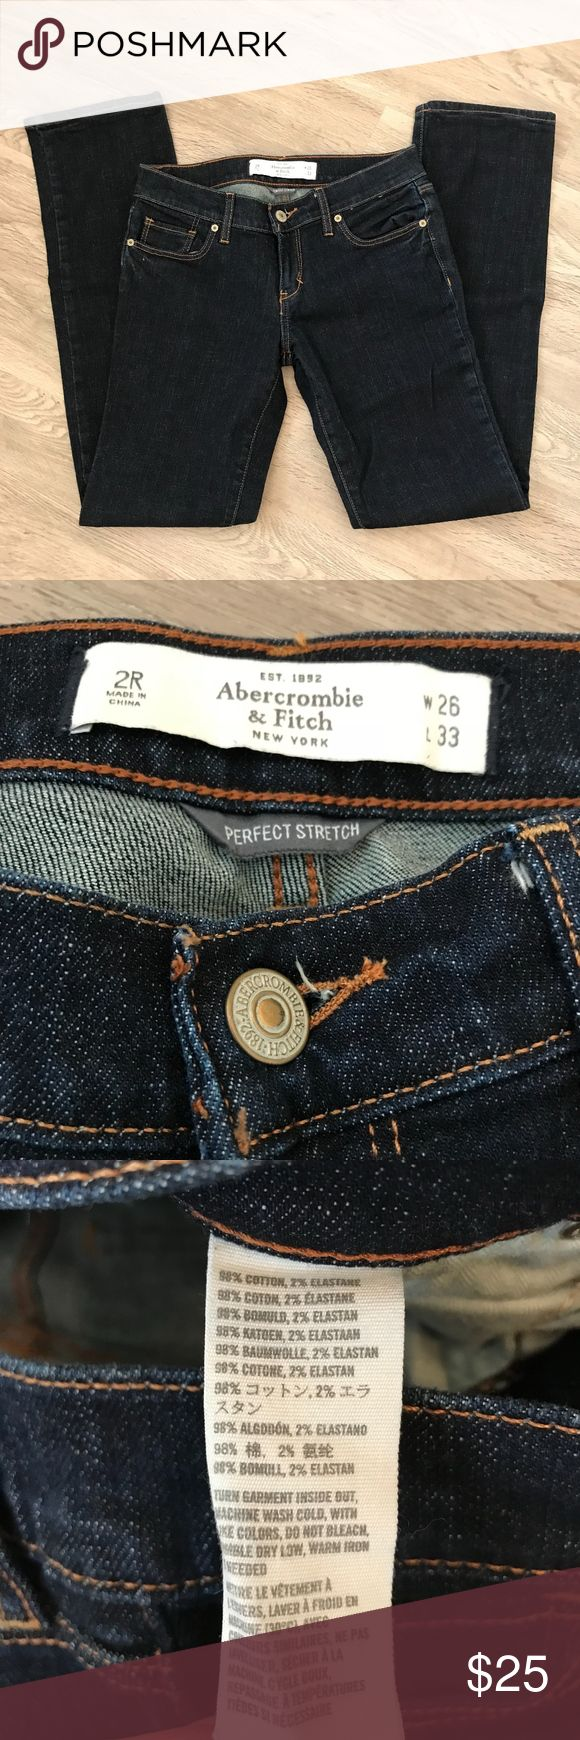 Abercrombie and Fitch Perfect Stretch Jean *NWOT* Perfect stretch jeans in dark wash. 2R, W26/L33 Abercrombie & Fitch Jeans Straight Leg